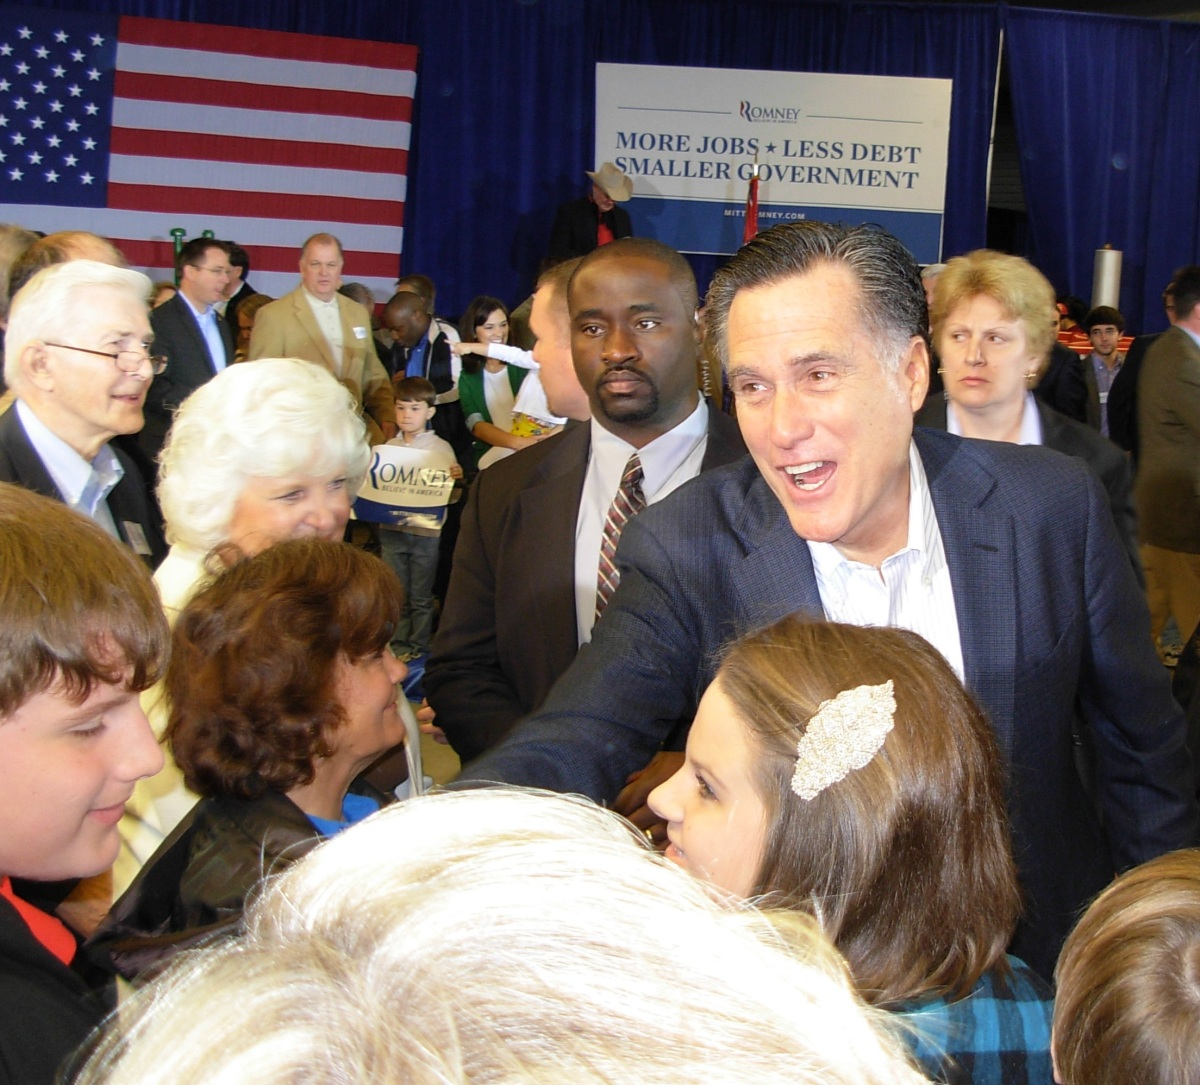 Gingrich, Romney, Santorum visit Mississippi, vie for hotly contested Southern delegates